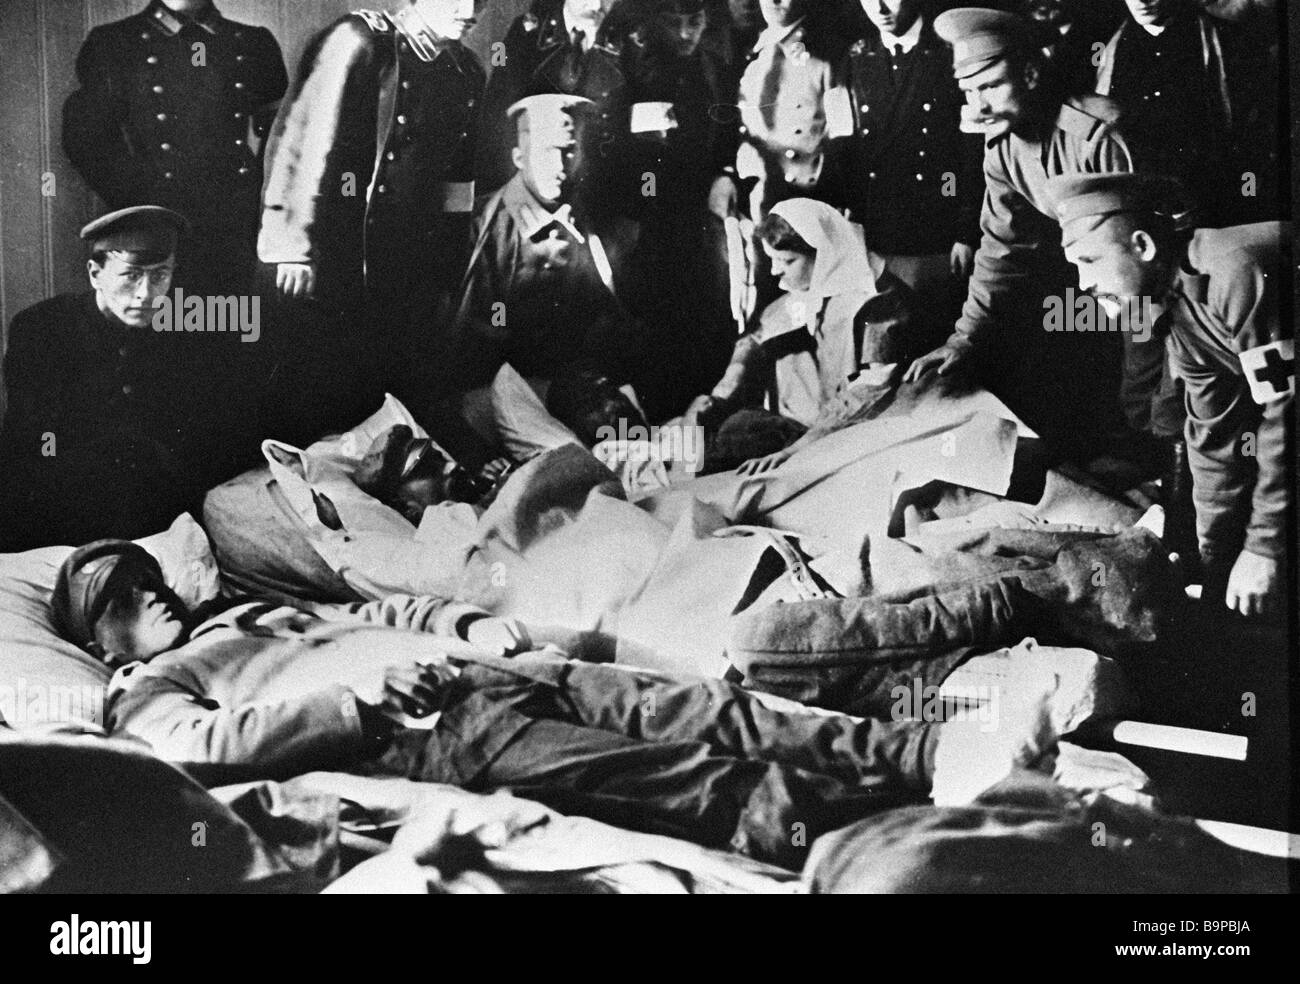 Wounded World War One soldiers in the Geography Society hospital - Stock Image